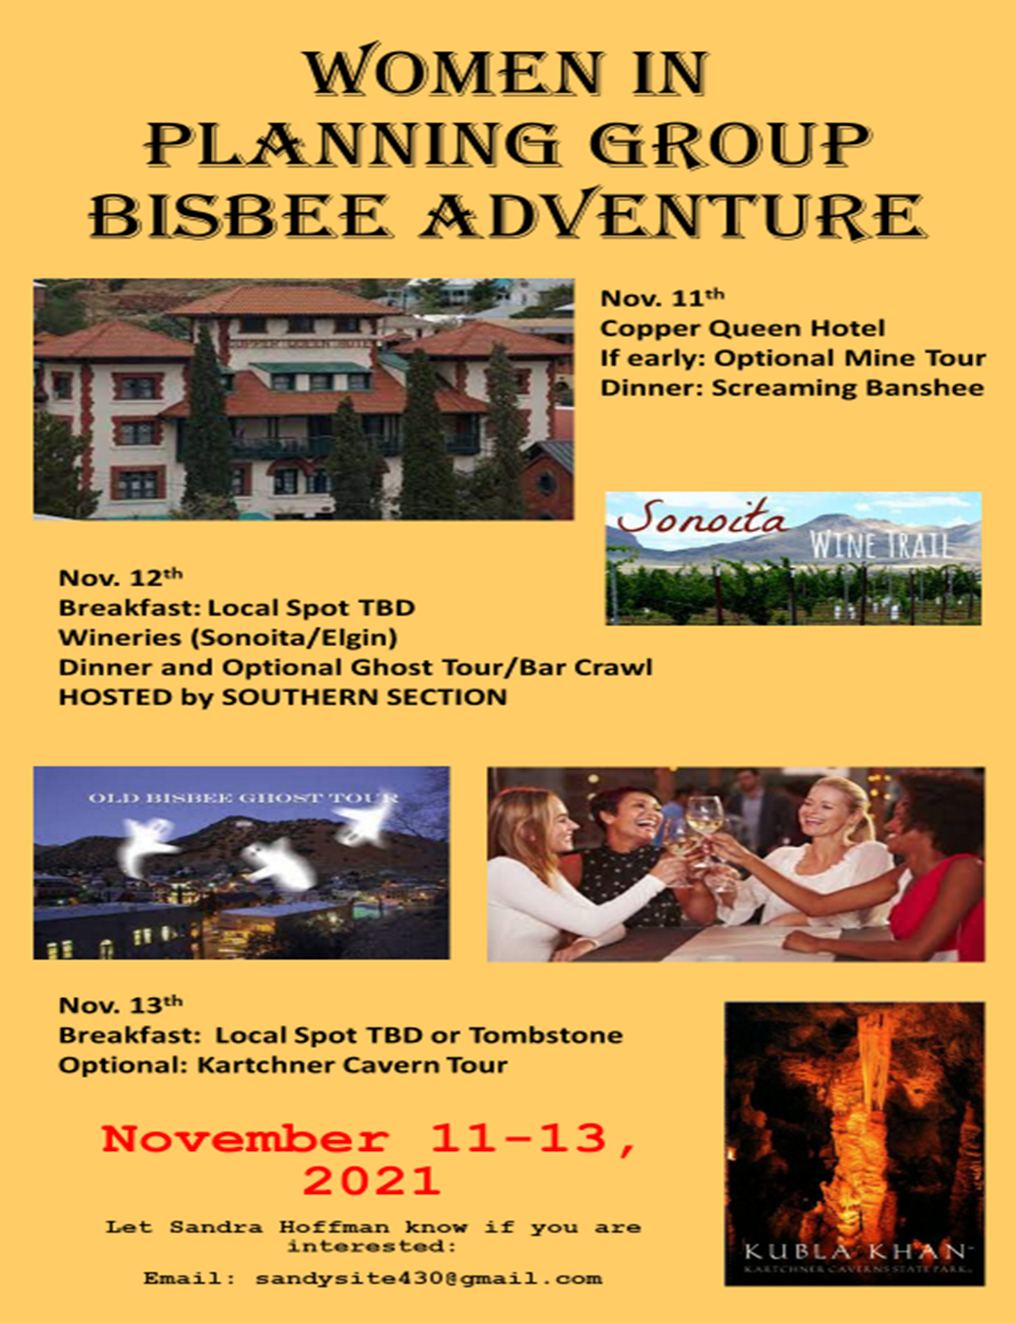 Everyone is invited to join the WPG in Bisbee November 11 - 13, 2021!!